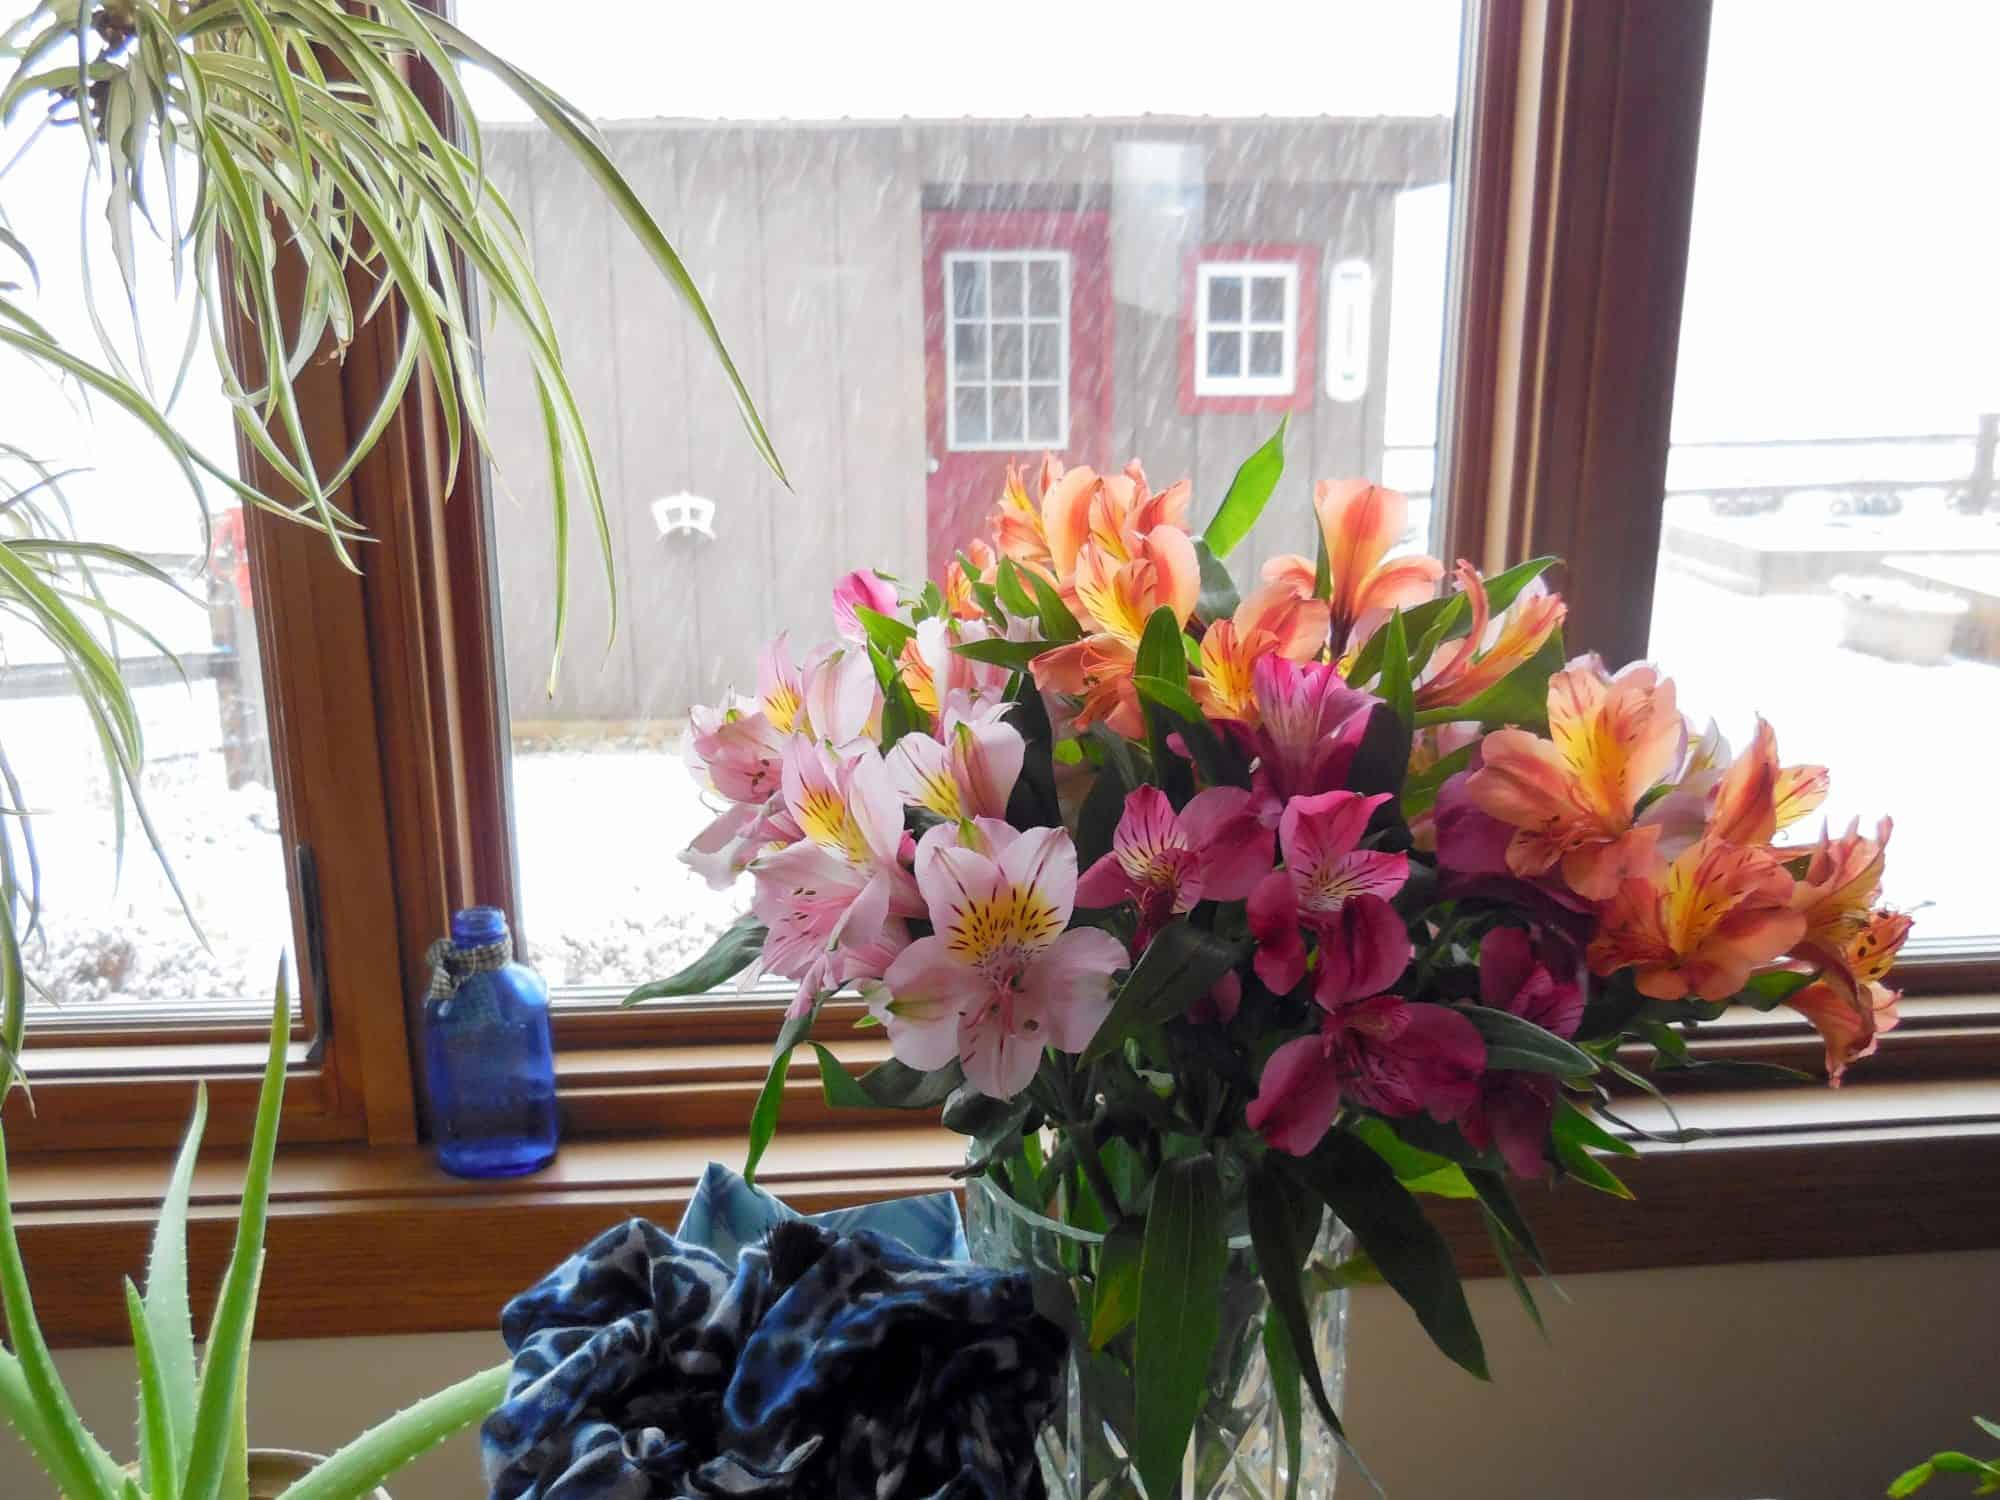 Using Color In Winter, To Cheer My Home & My Heart. A bouquet of alstromeria